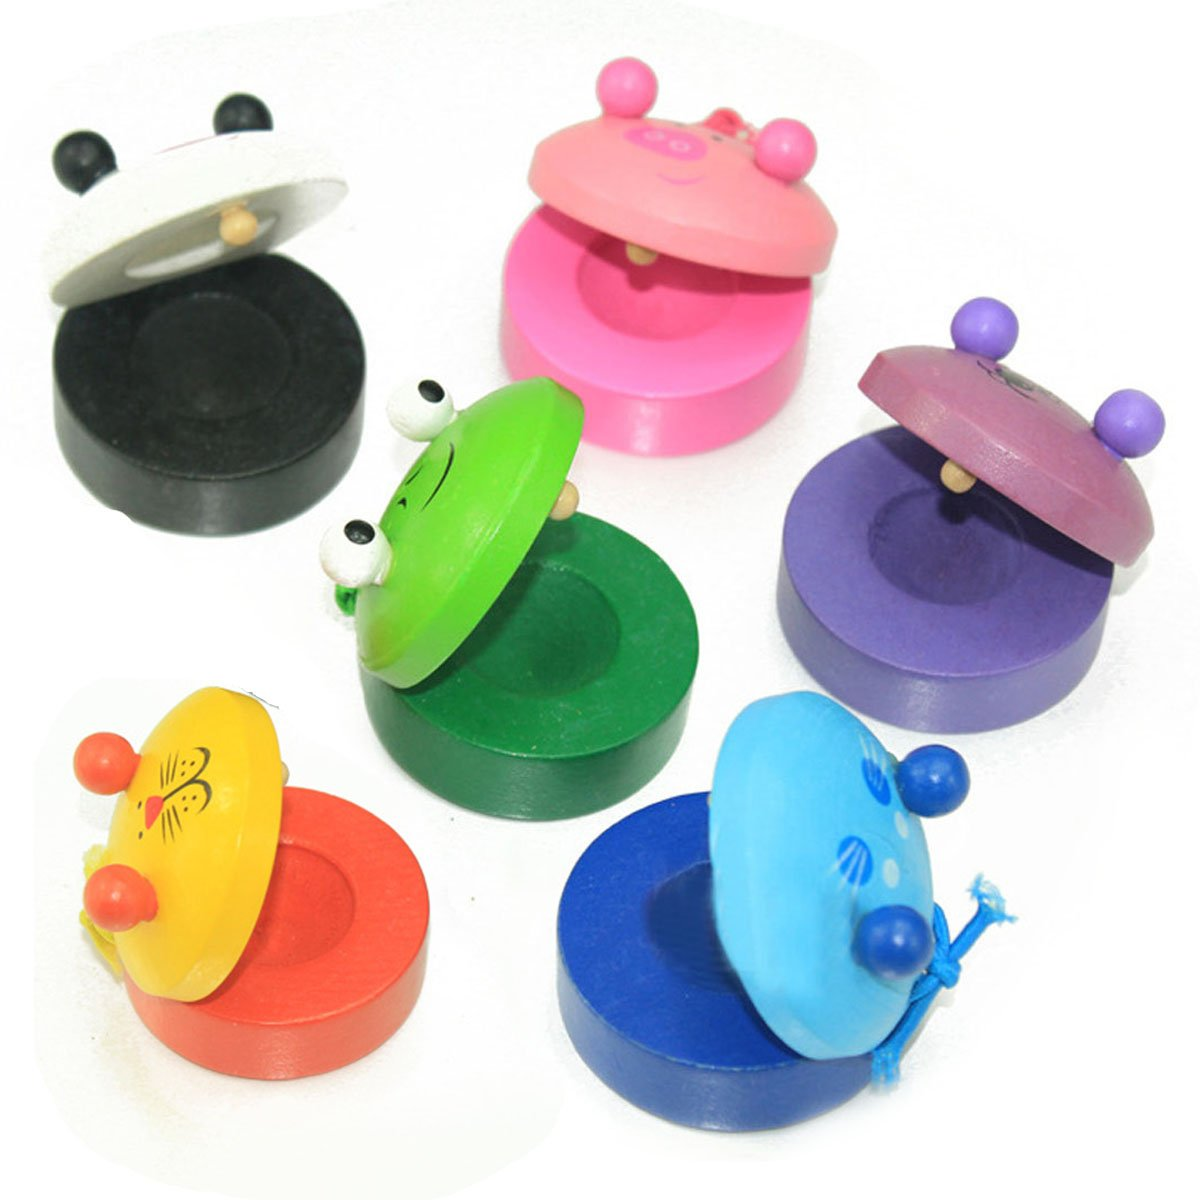 OSOPOLA Castanets Finger Wooden Musical Instruments Toys for Baby Kids 6pcs